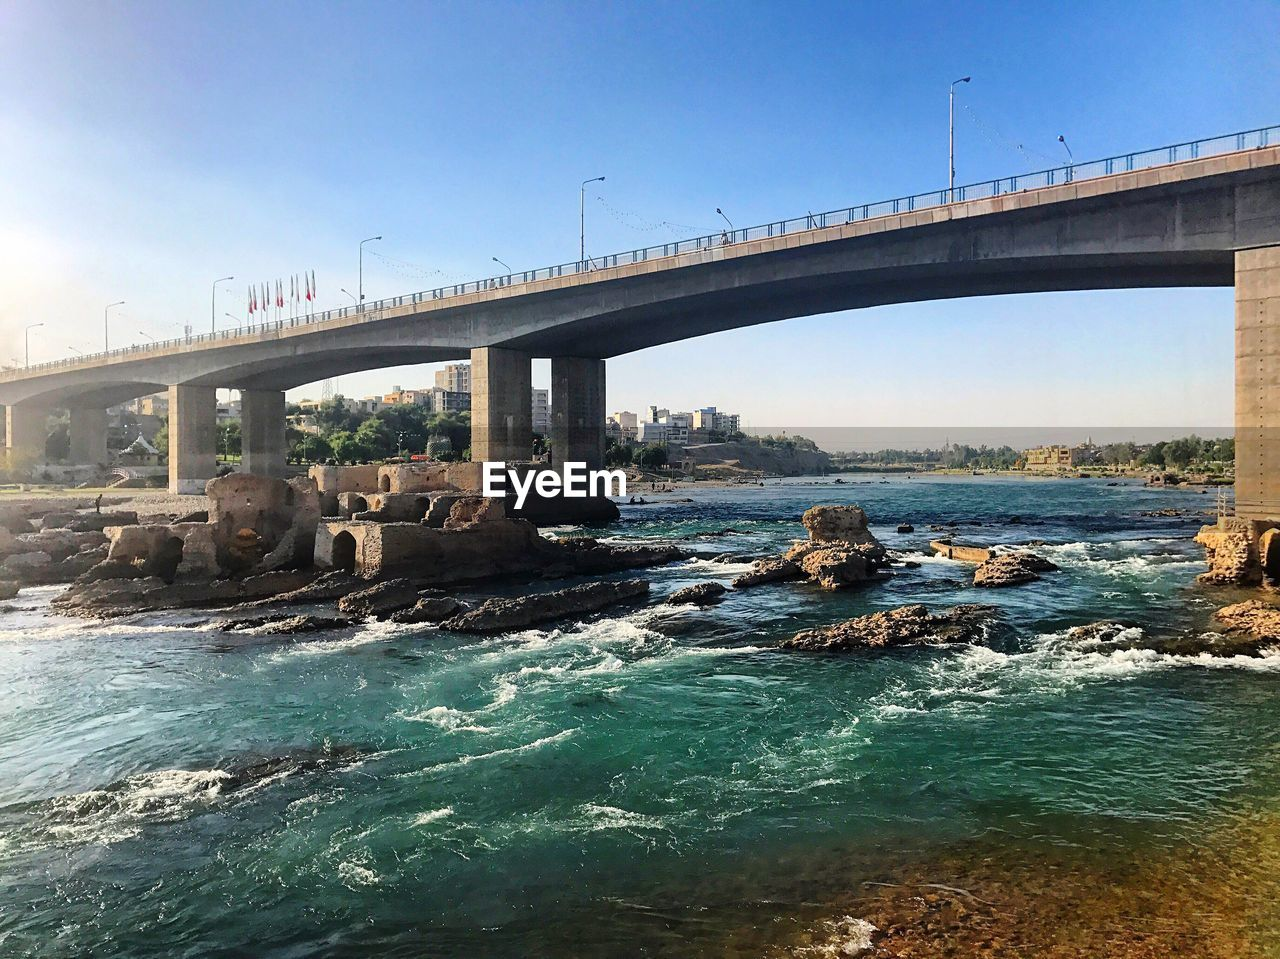 bridge - man made structure, connection, architecture, engineering, built structure, bridge, water, river, clear sky, transportation, nature, waterfront, day, outdoors, sky, below, sunlight, no people, underneath, under